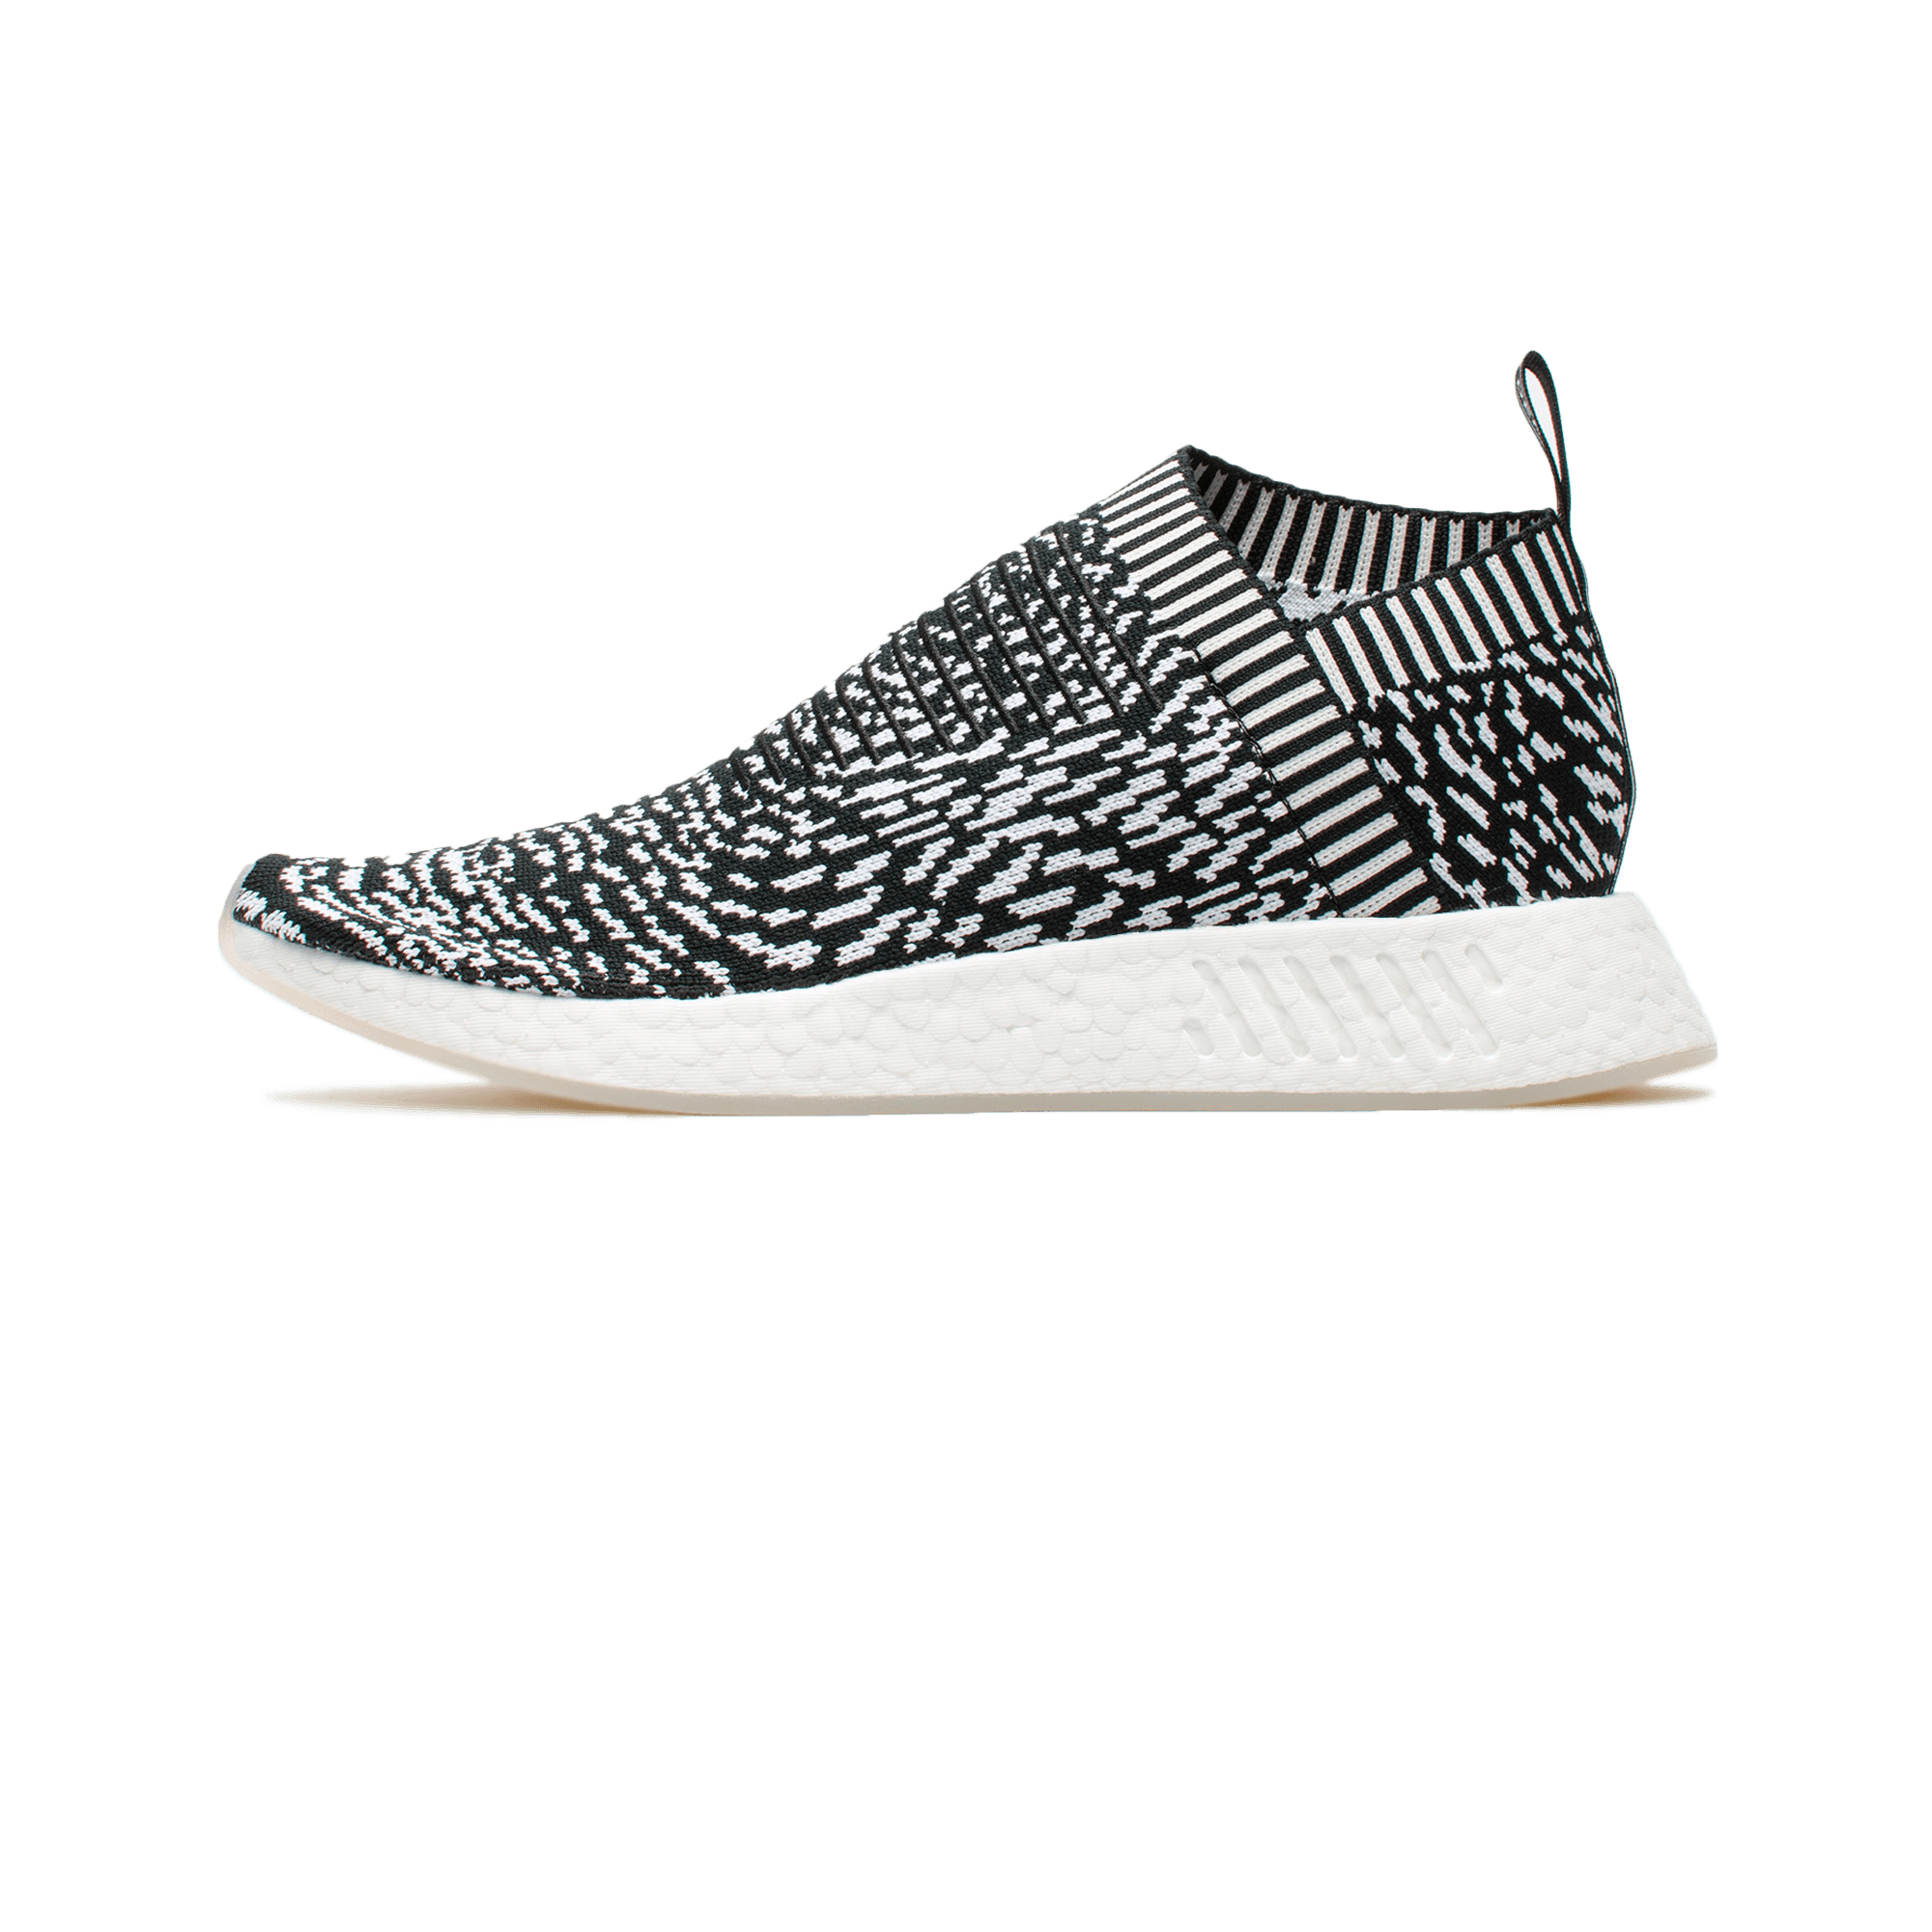 adidas nmd r1 pk. xr1 zebra oreo khaki Men's Shoes